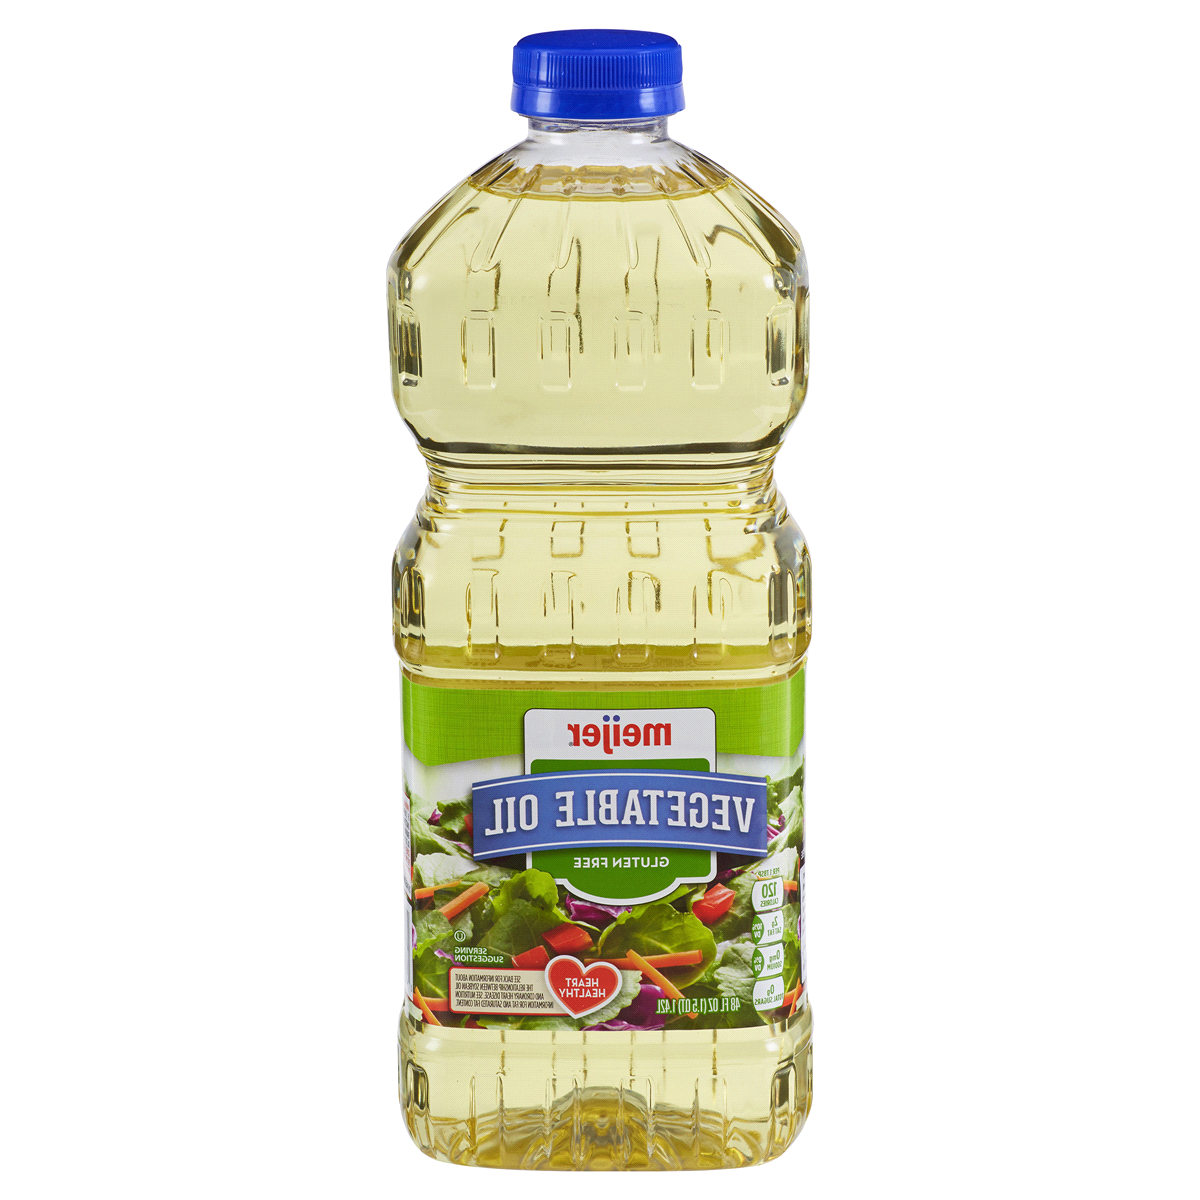 New Seasoned Vegetable Palm/ Sunflower Oil Available In Bulk Stock At Best Cheap Prices